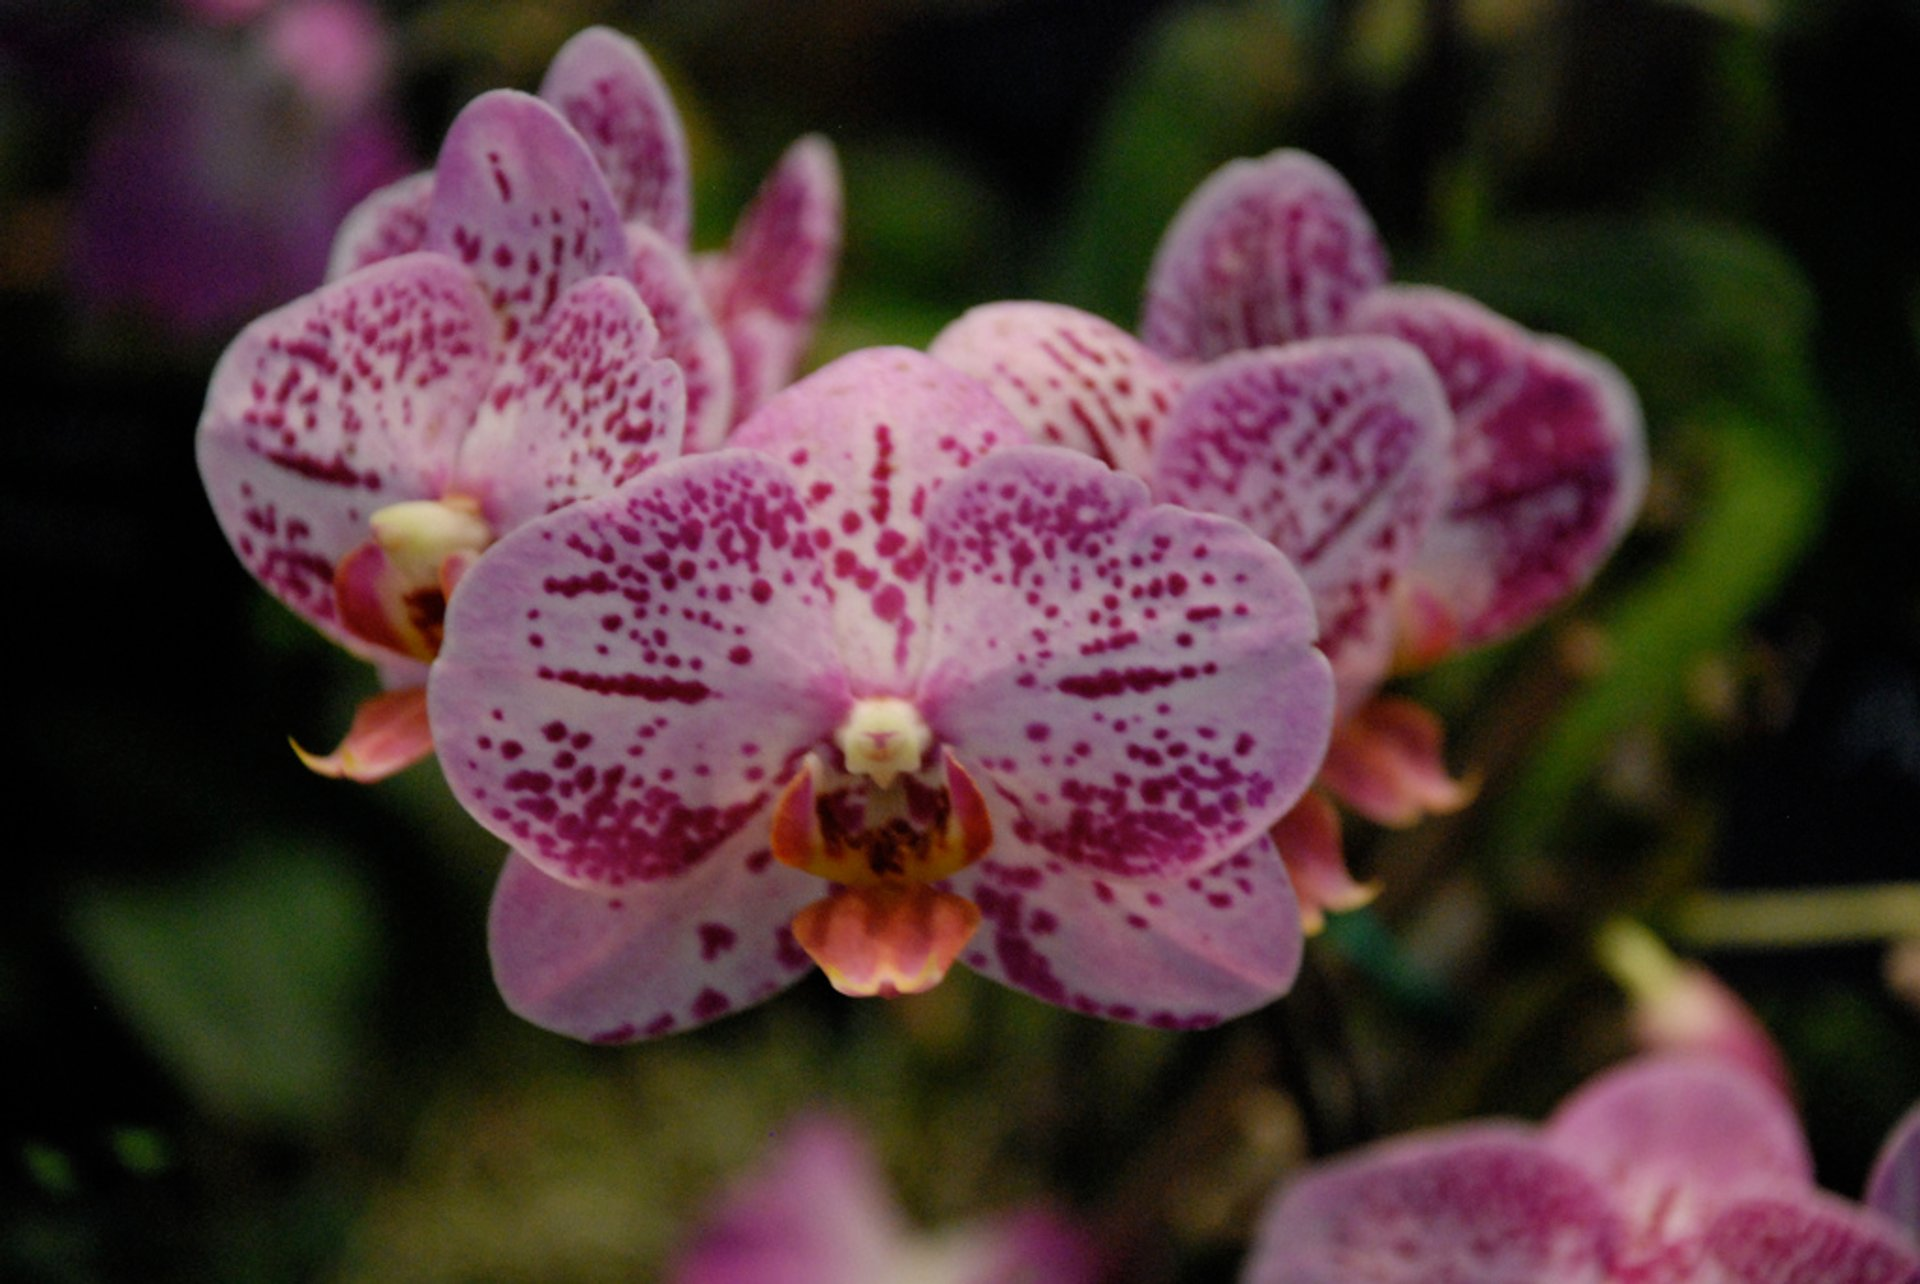 Orchid Bloom in Kenya 2020 - Best Time